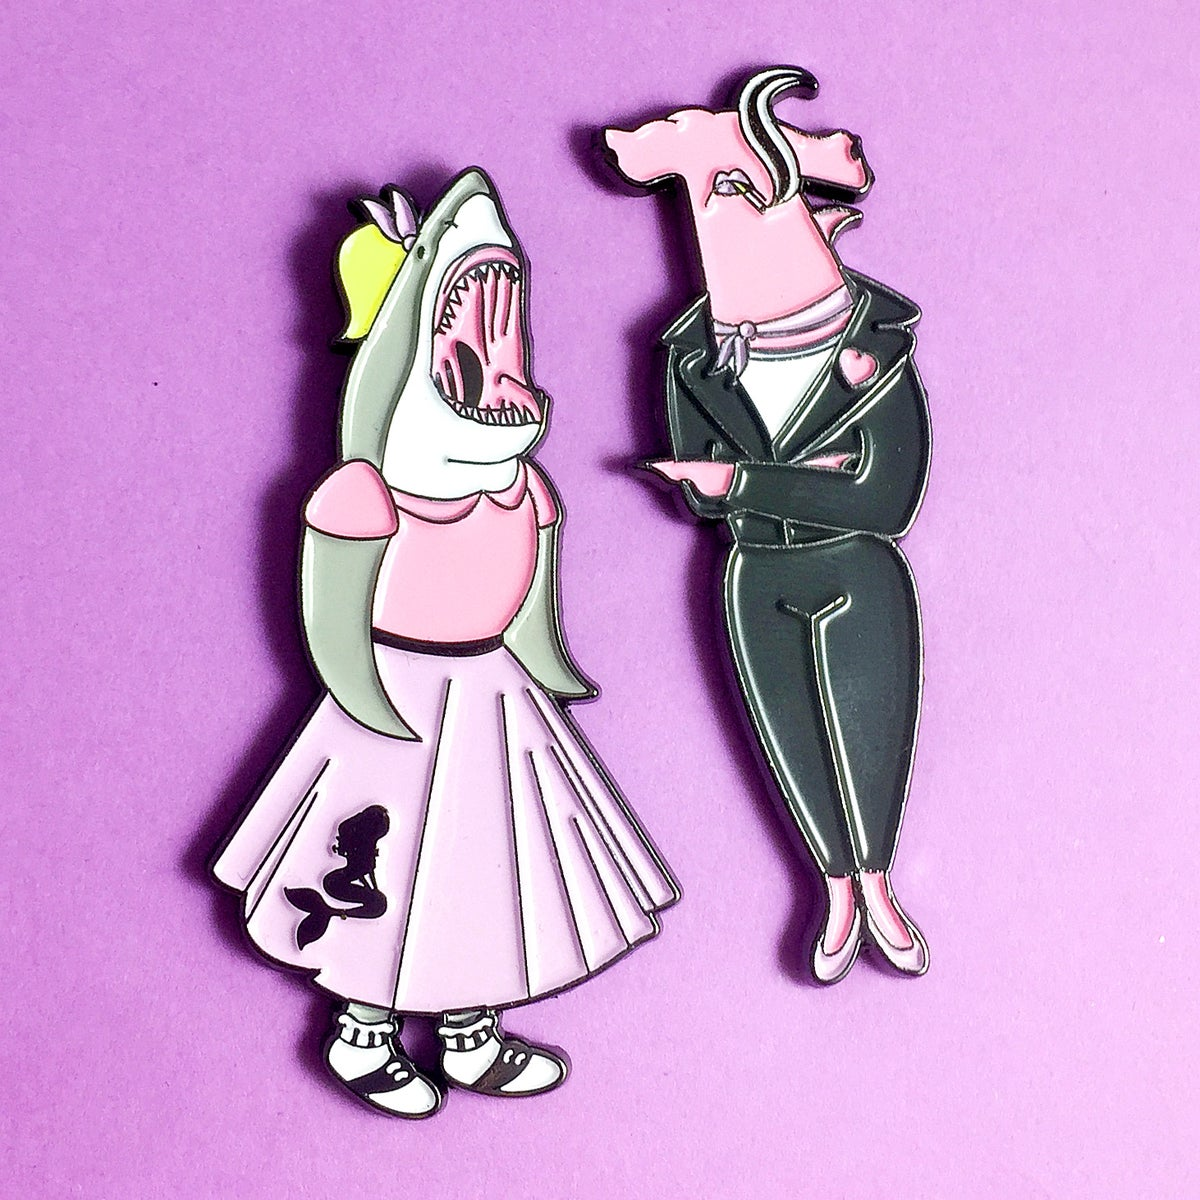 Image of Shark Babes Enamel Pin Set of 2